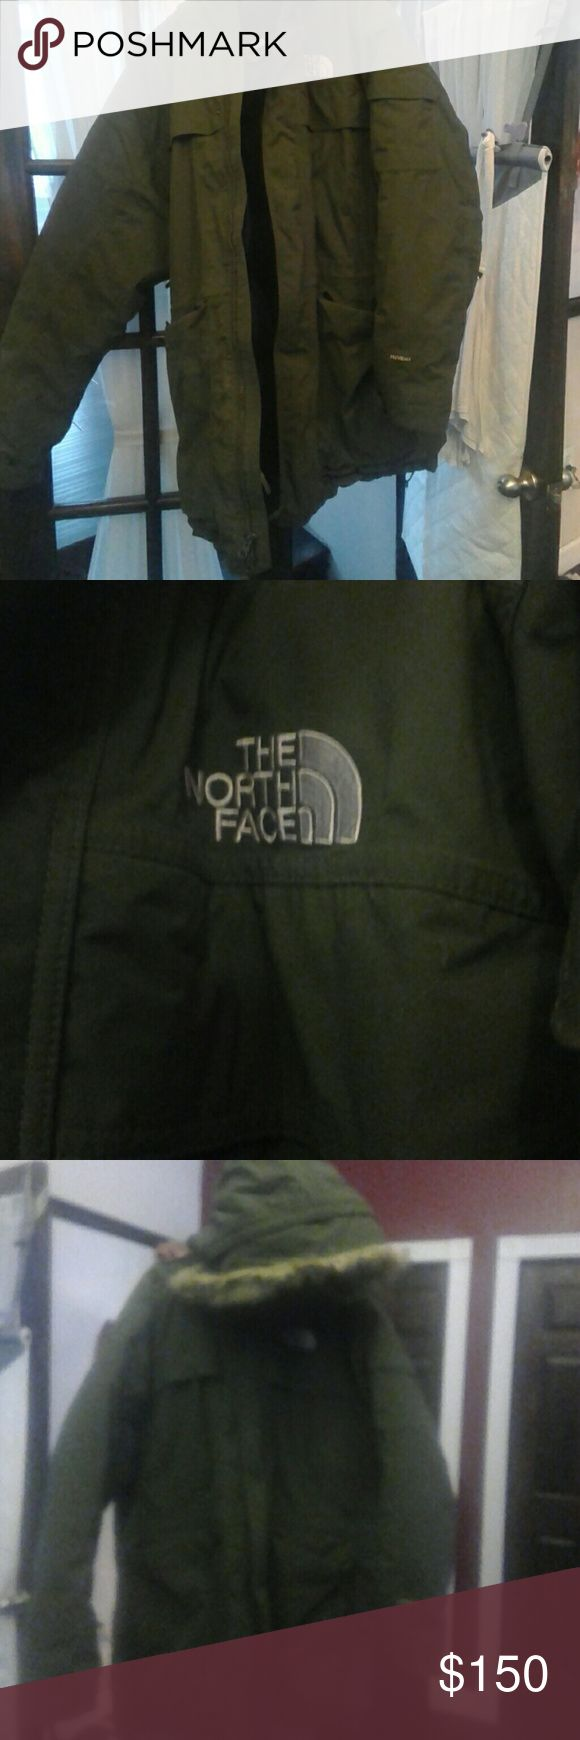 Mens Winter Coat Mens North Face XXXL Winter Coat The North Face Jackets & Coats Ski & Snowboard